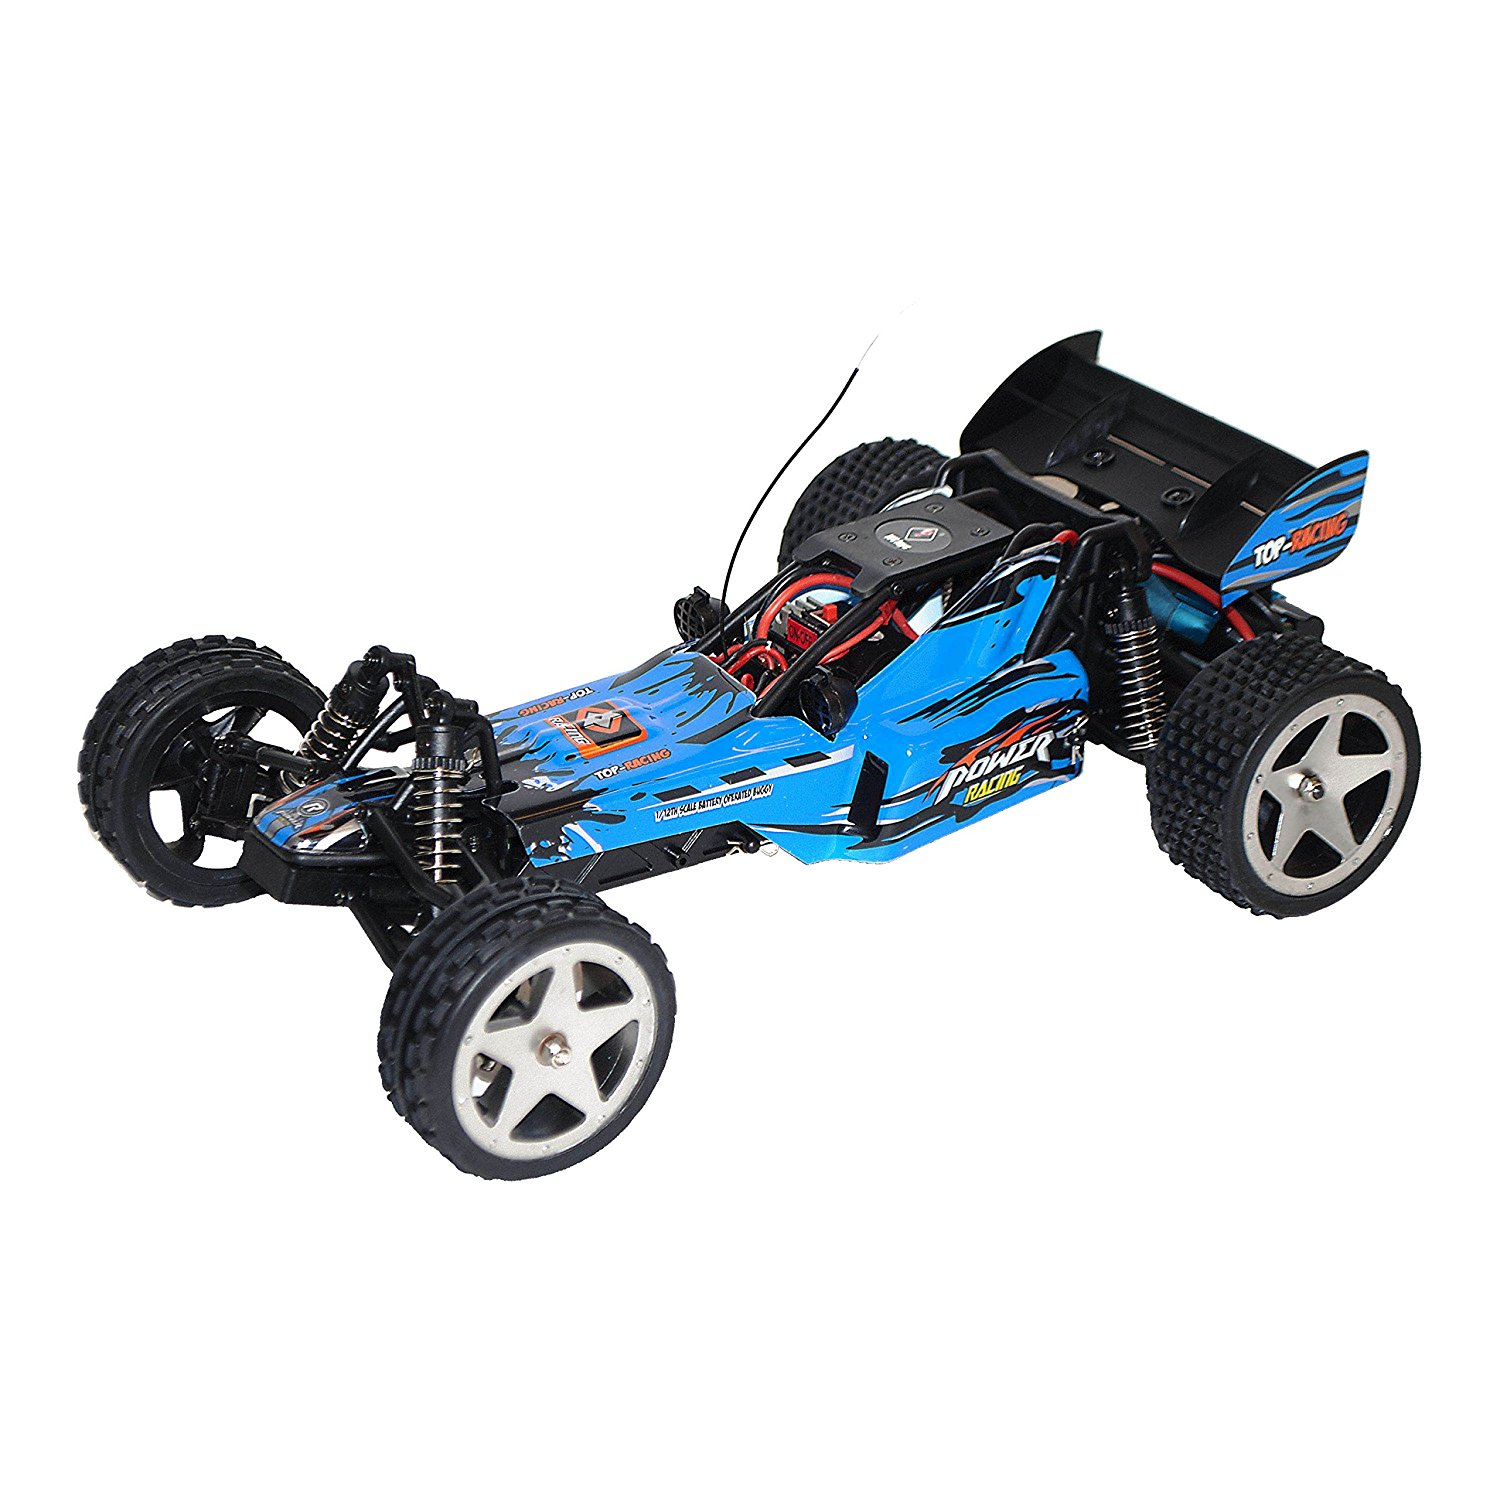 2WD 2.4 Ghz Electric Power High Speed Off-Road Buggy, Blue 1/12 Scale